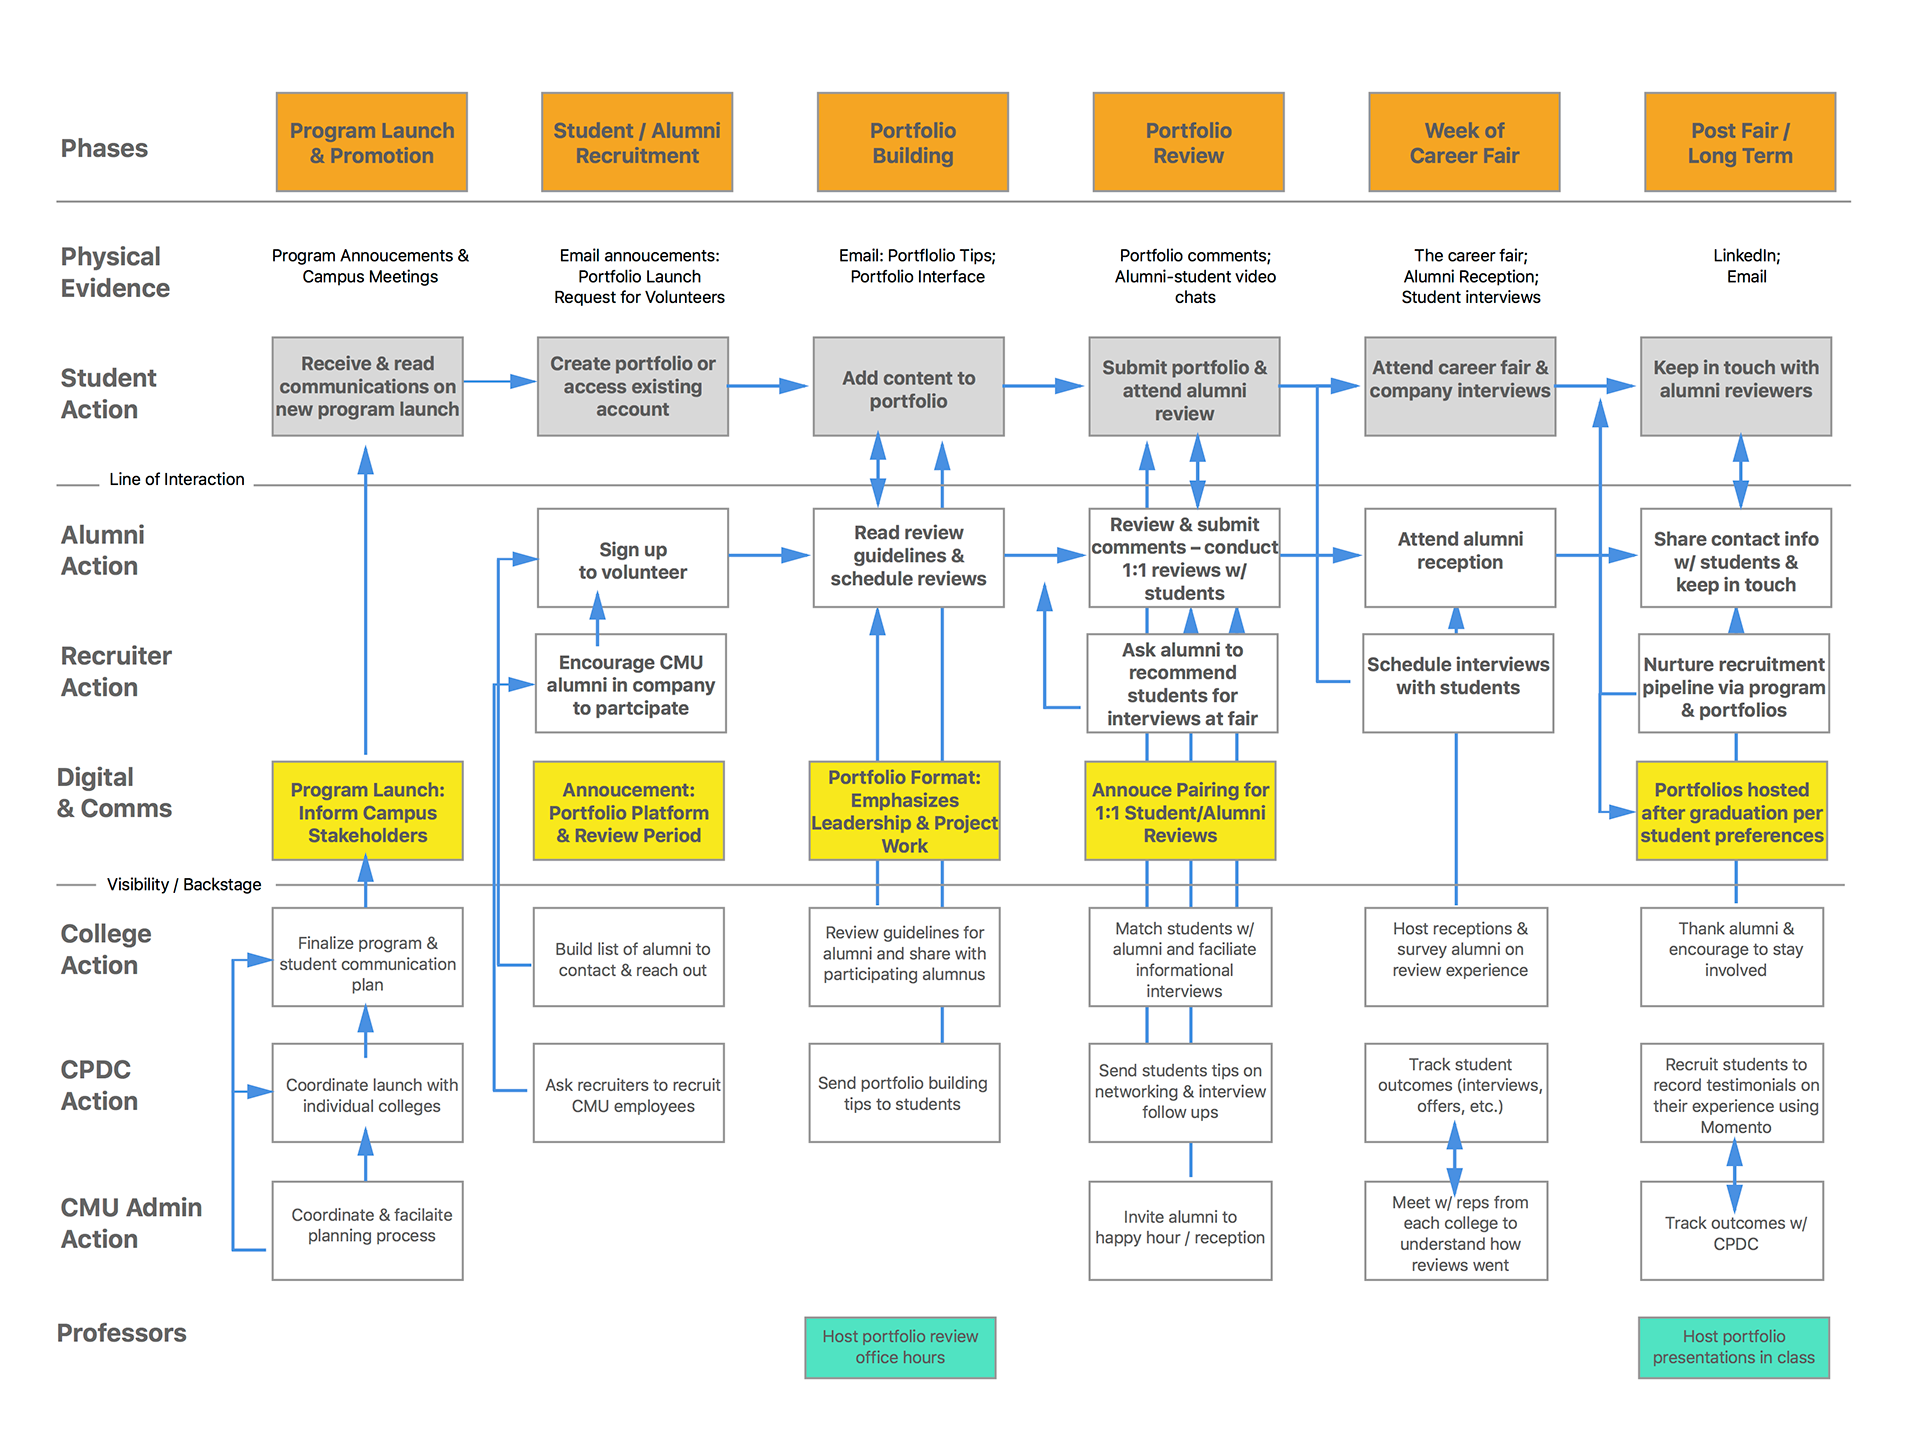 Sarah moss horwitz memento in order to design our final service we created a service blueprint and updated value flow model that capture the actions and value of stakeholders in the malvernweather Choice Image